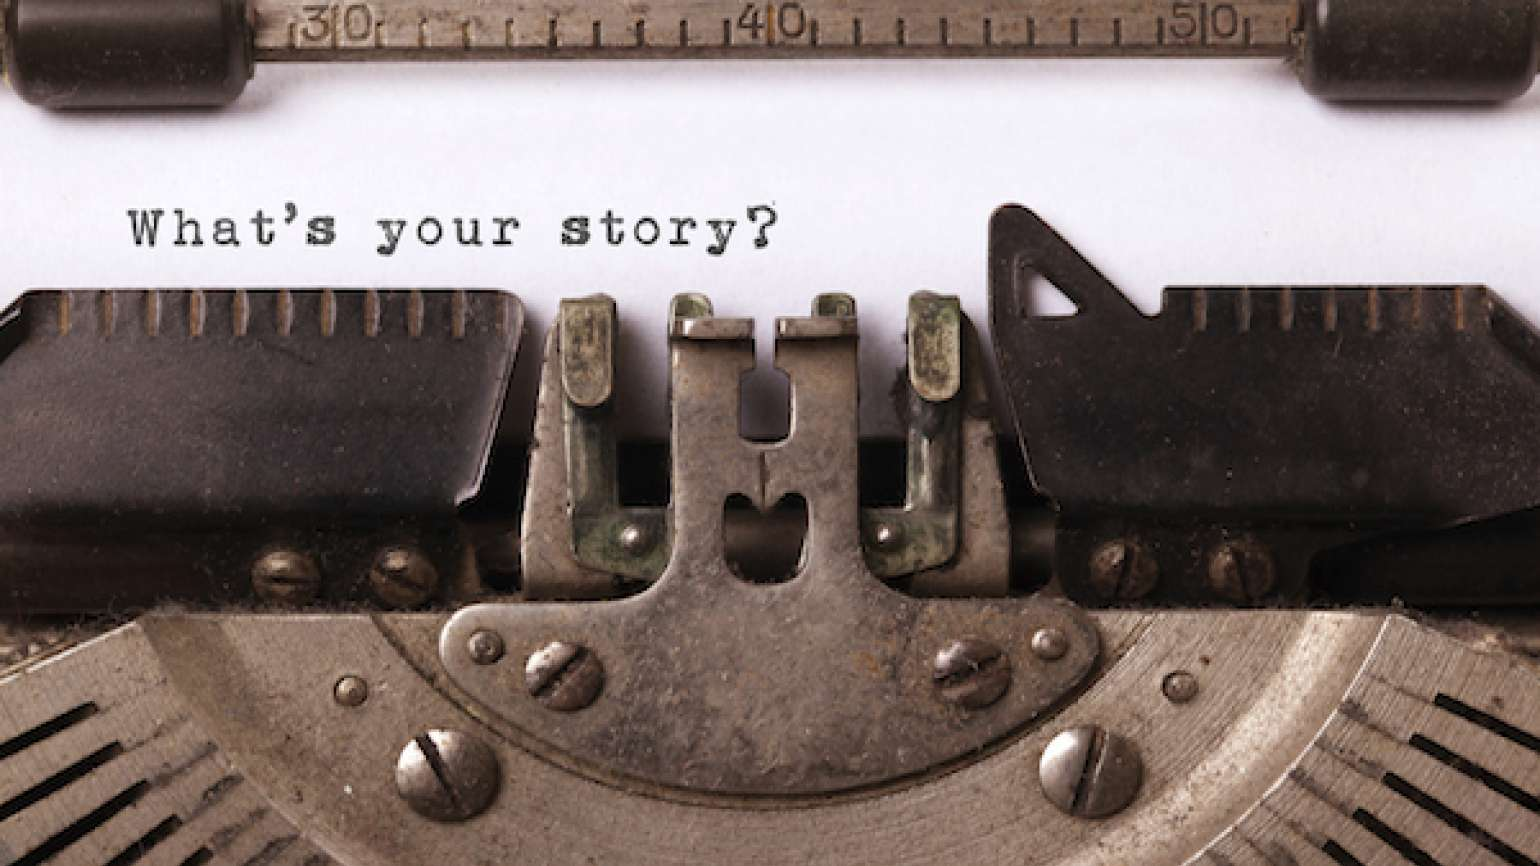 Share your story. It could heal or inspire someone. Or change someone's life.